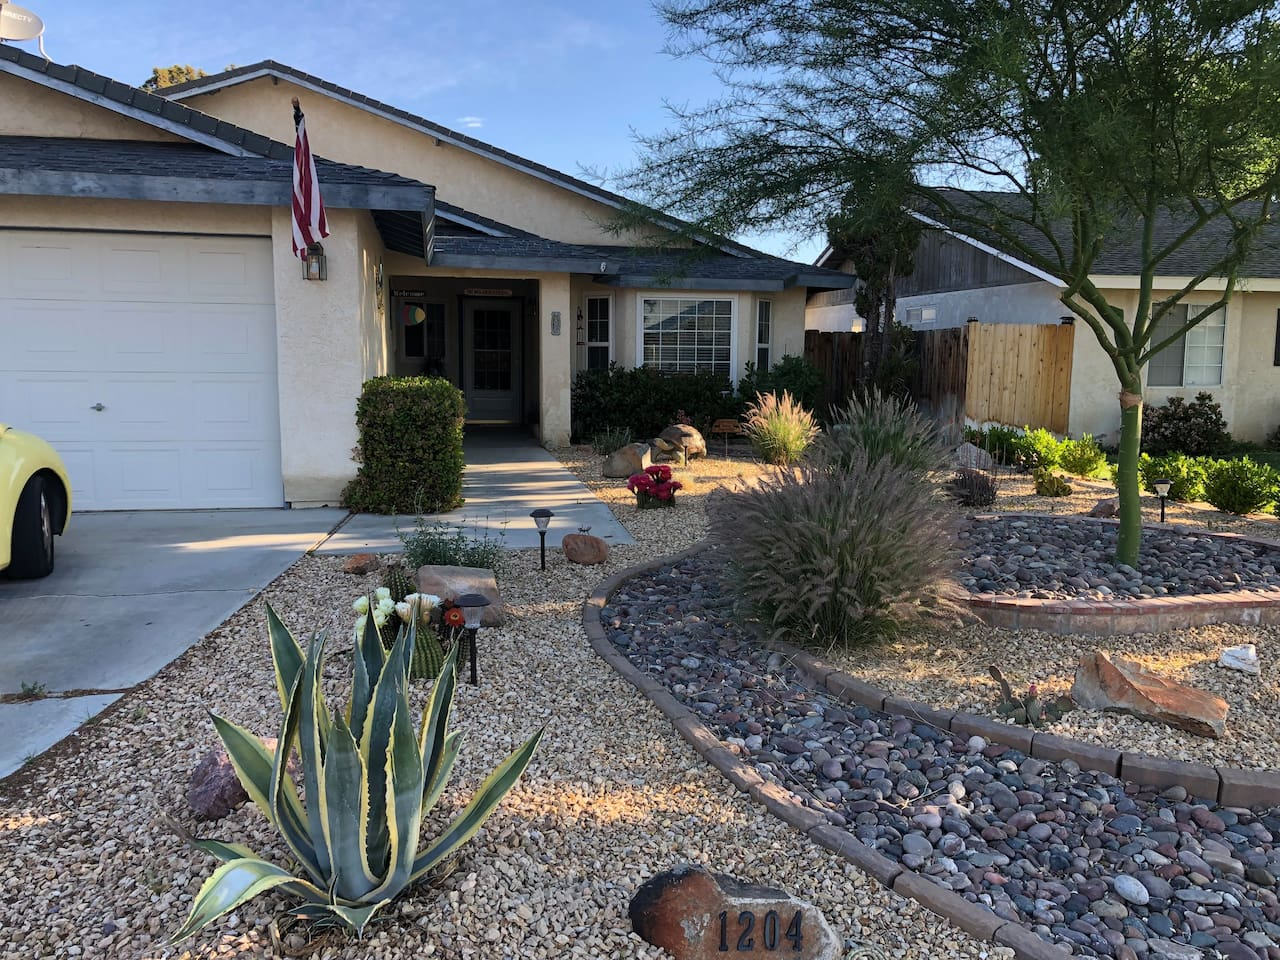 Our desert landscaped home